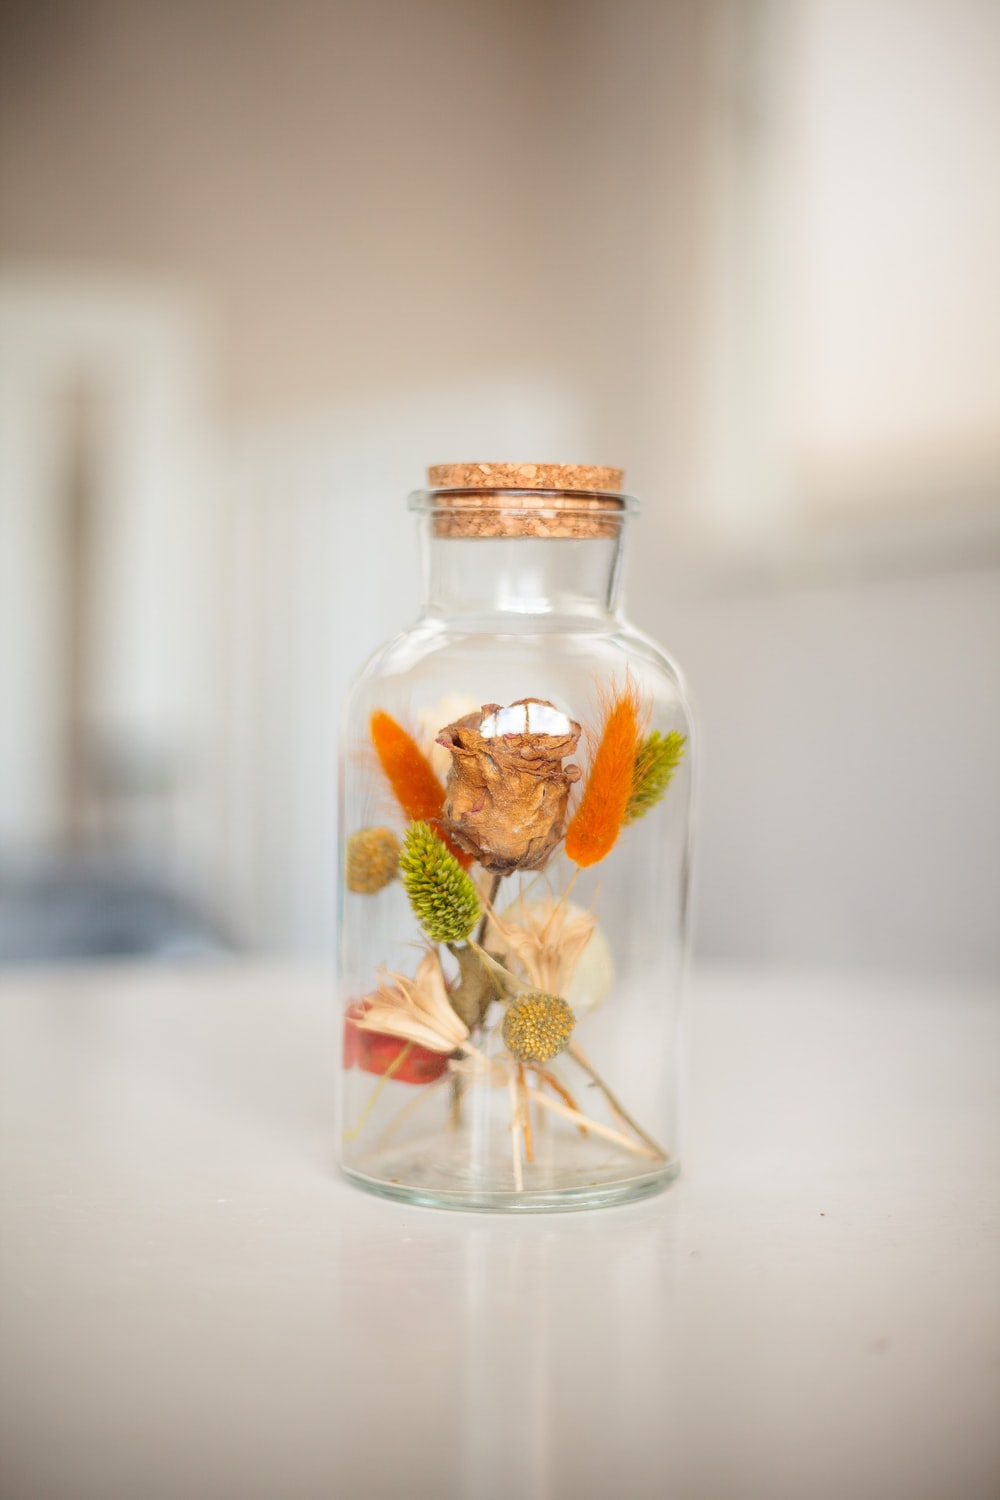 clear glass jar with green and red flower inside